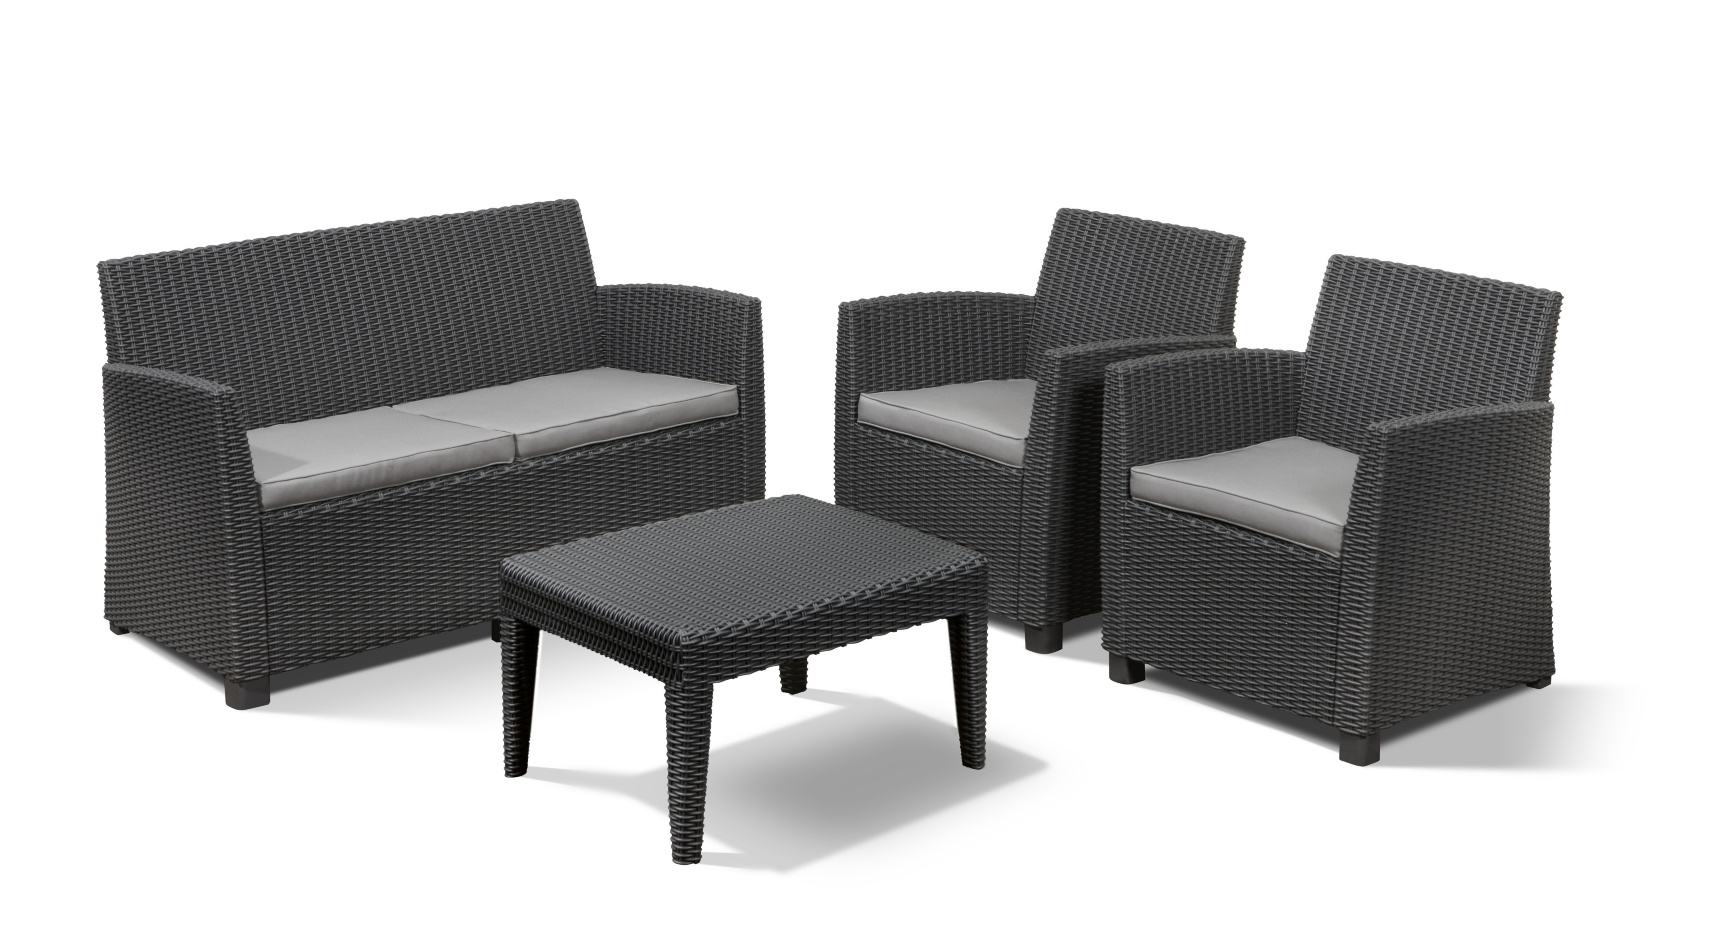 Lounge Sofa Allibert Allibert Corona Lounge Set Graphite Allibert